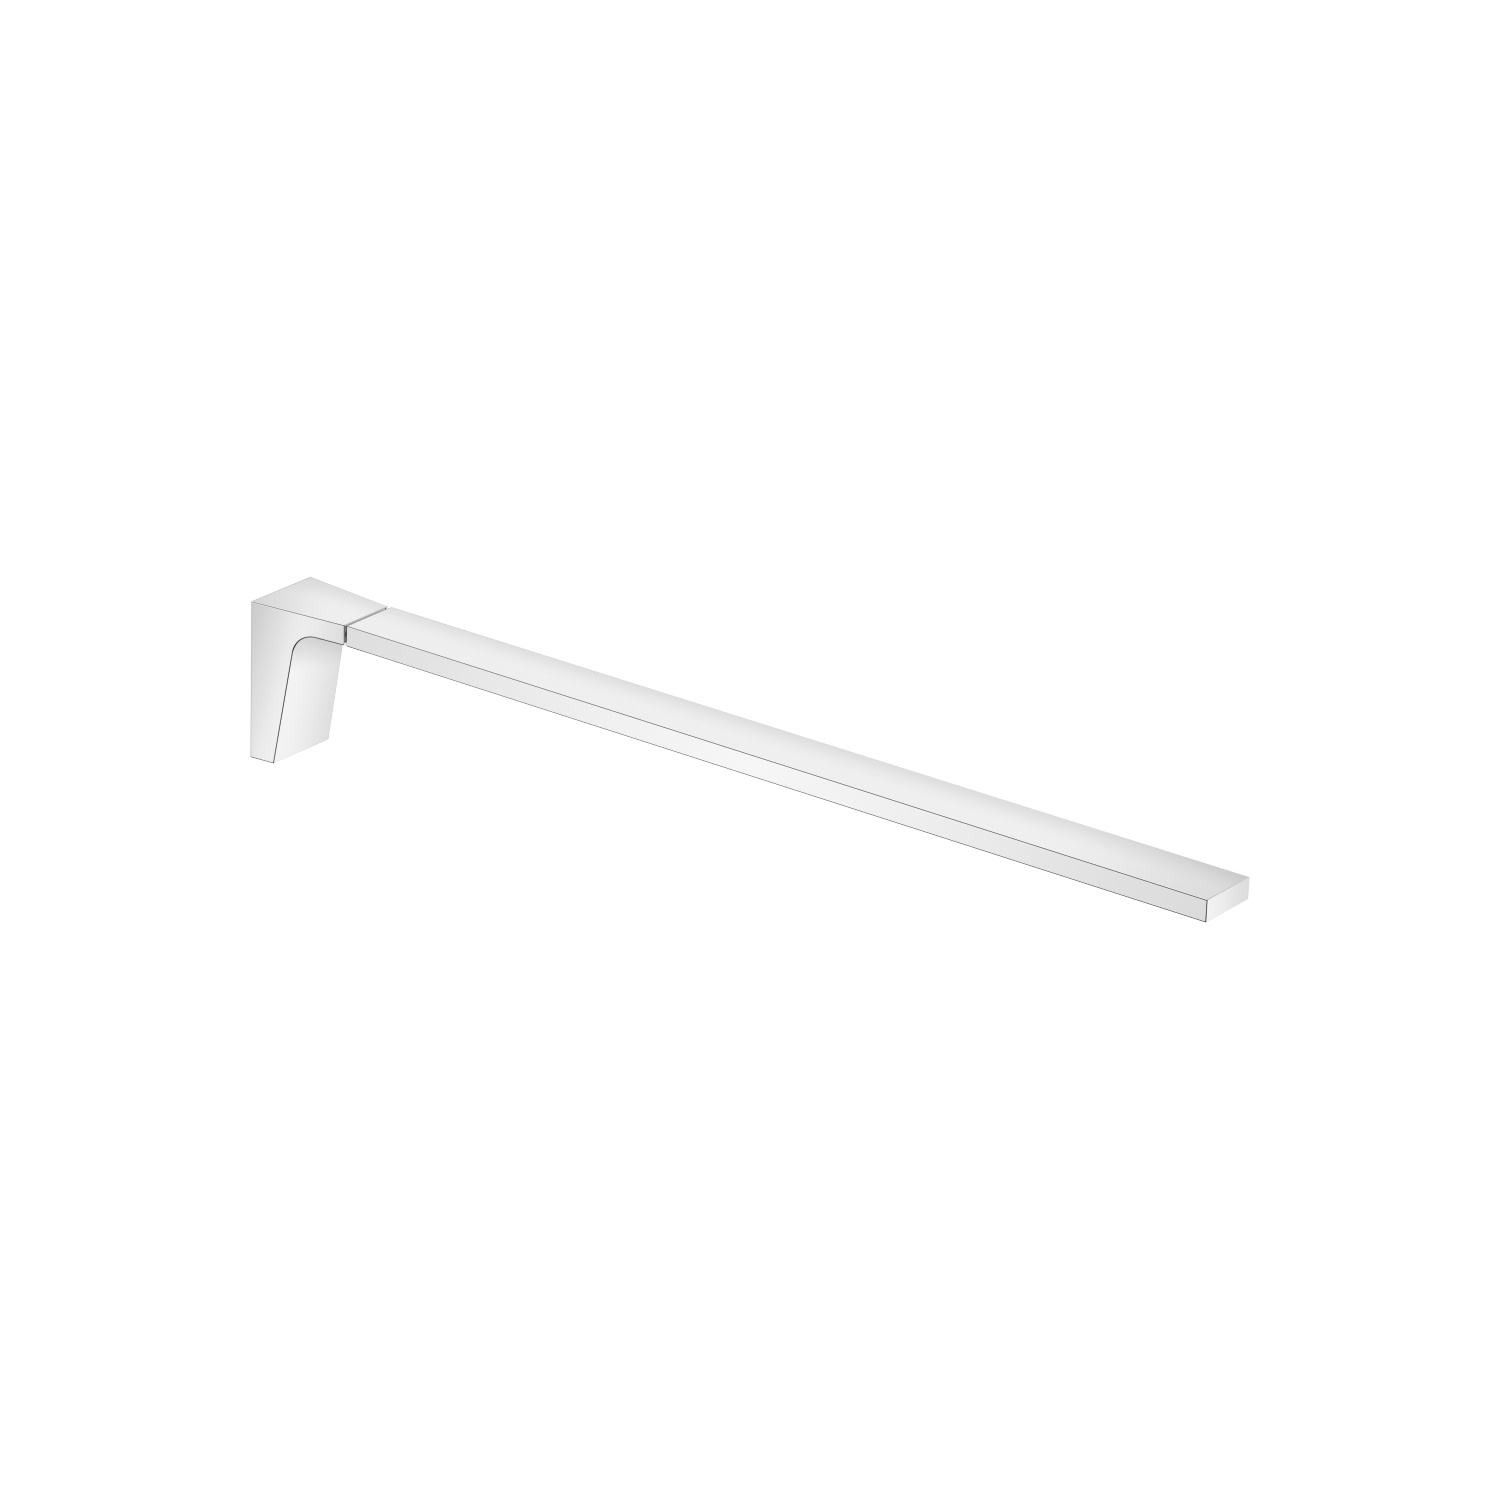 Towel bar 1-piece non-swivel - polished chrome - 83 211 705-00